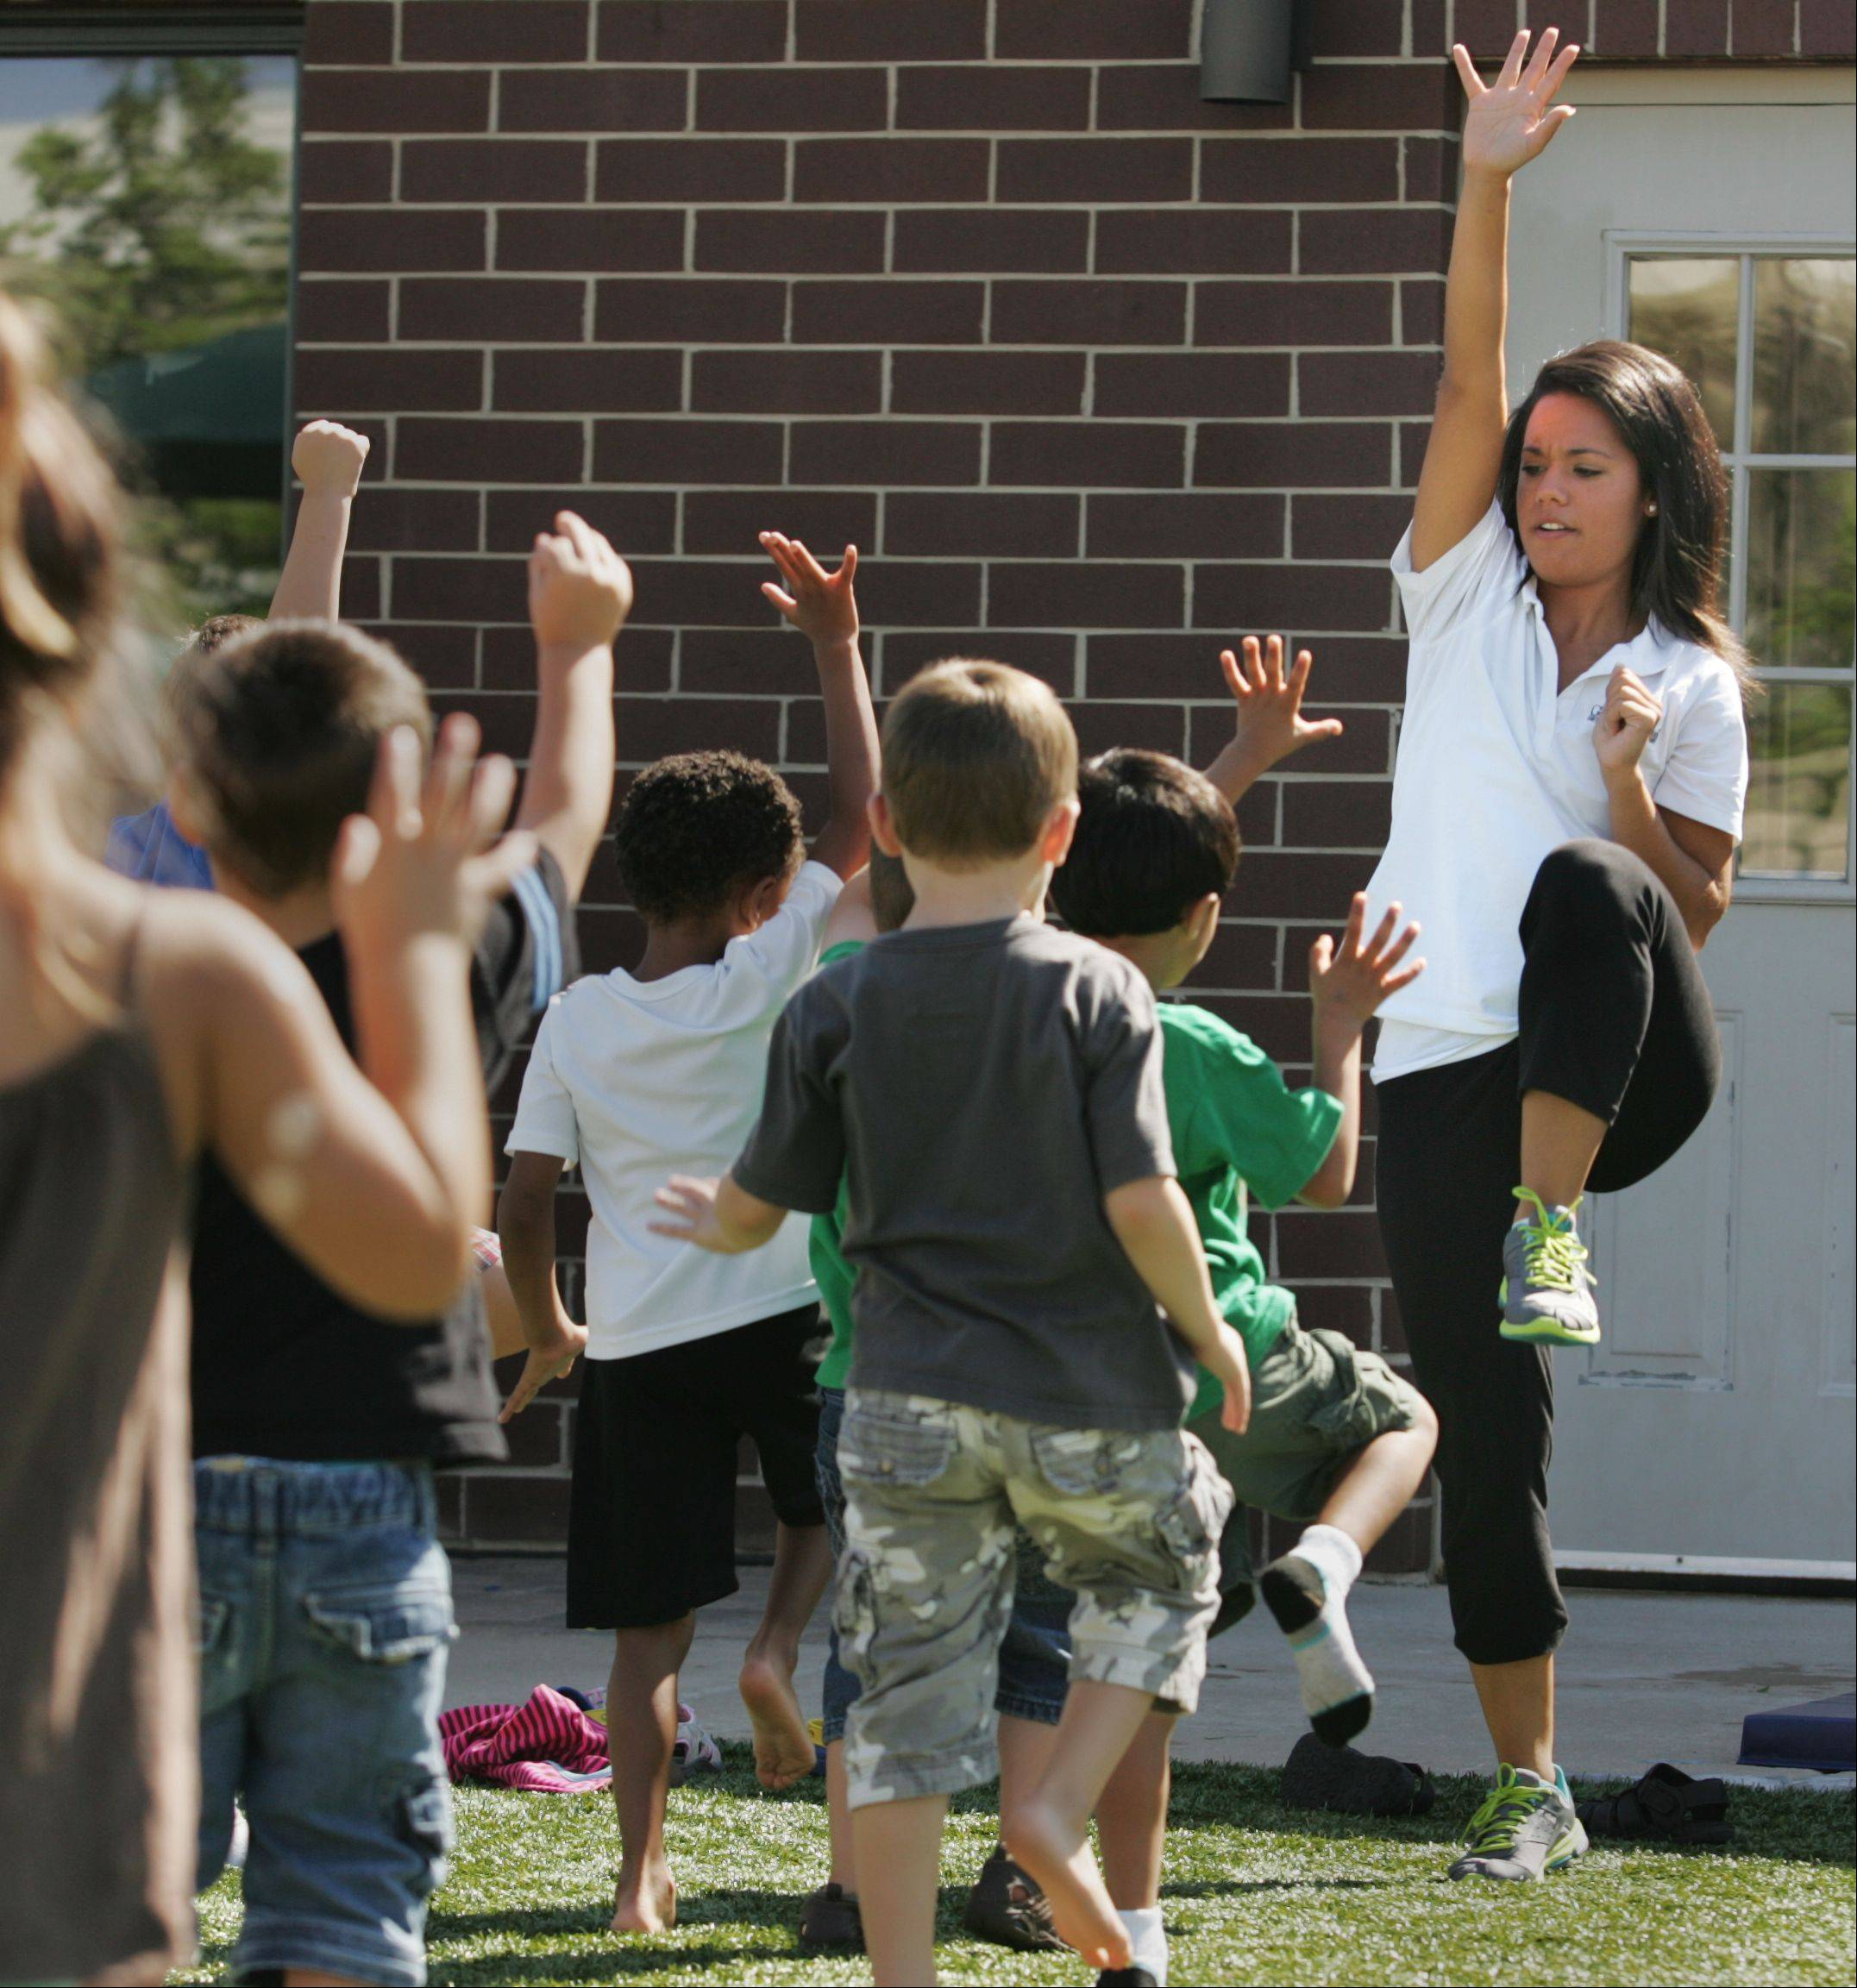 New physical education teacher Nichole Vittorino works with young students at the Goddard School in Elgin. Vittorino, 25 from Gilberts, is the first PE teacher at over 300 Goddard School locations across the country.